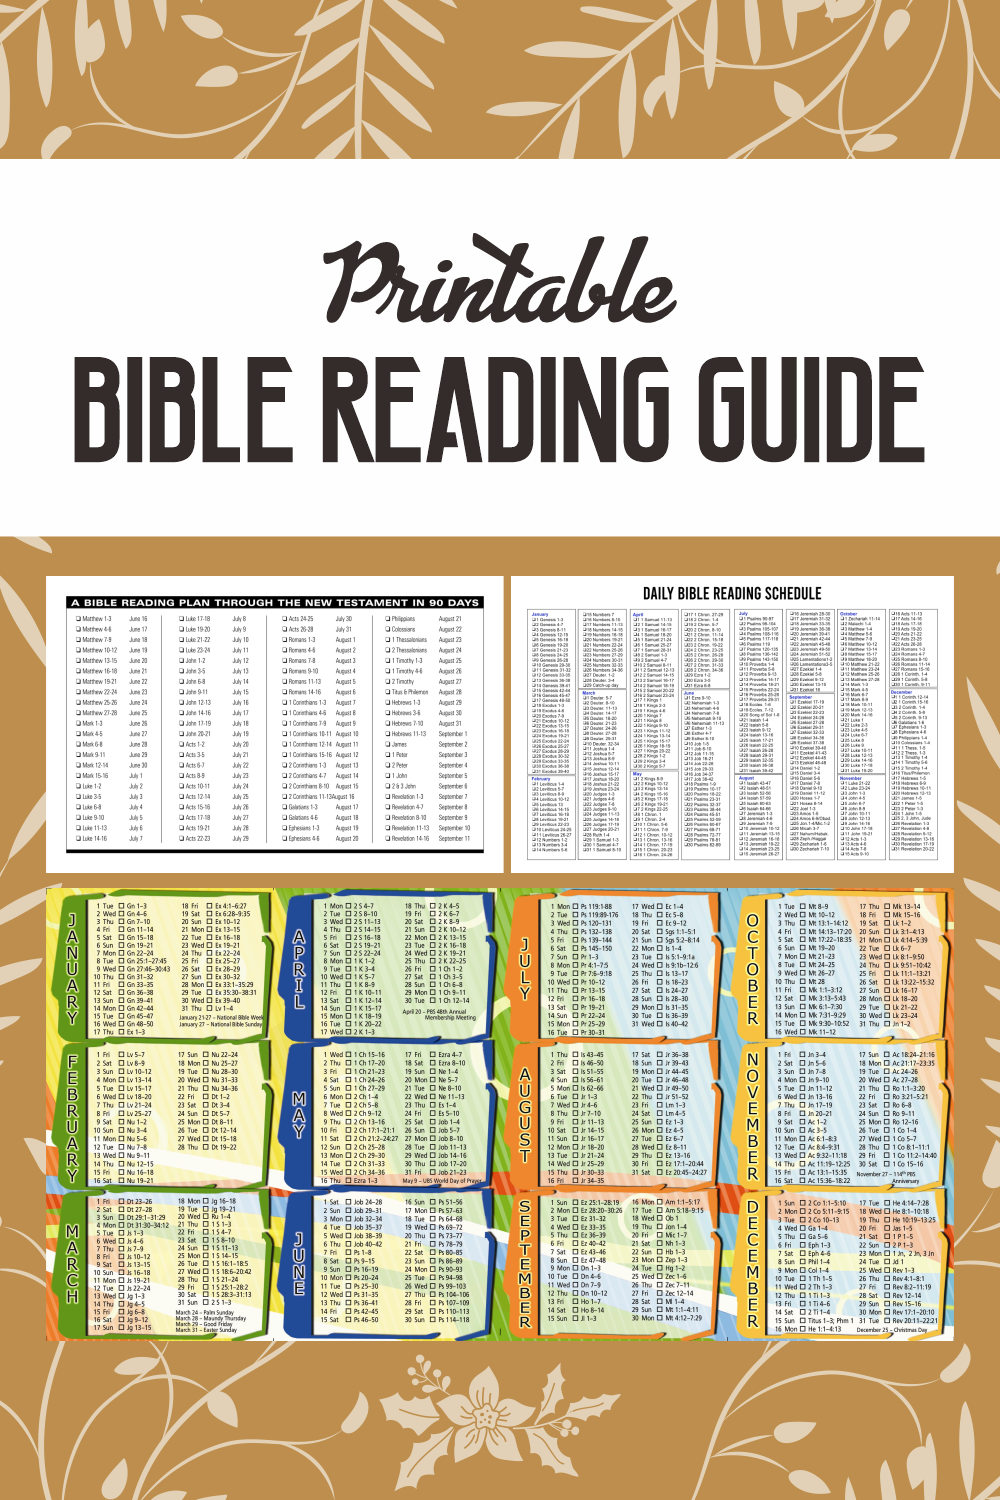 Printable Bible Reading Guide